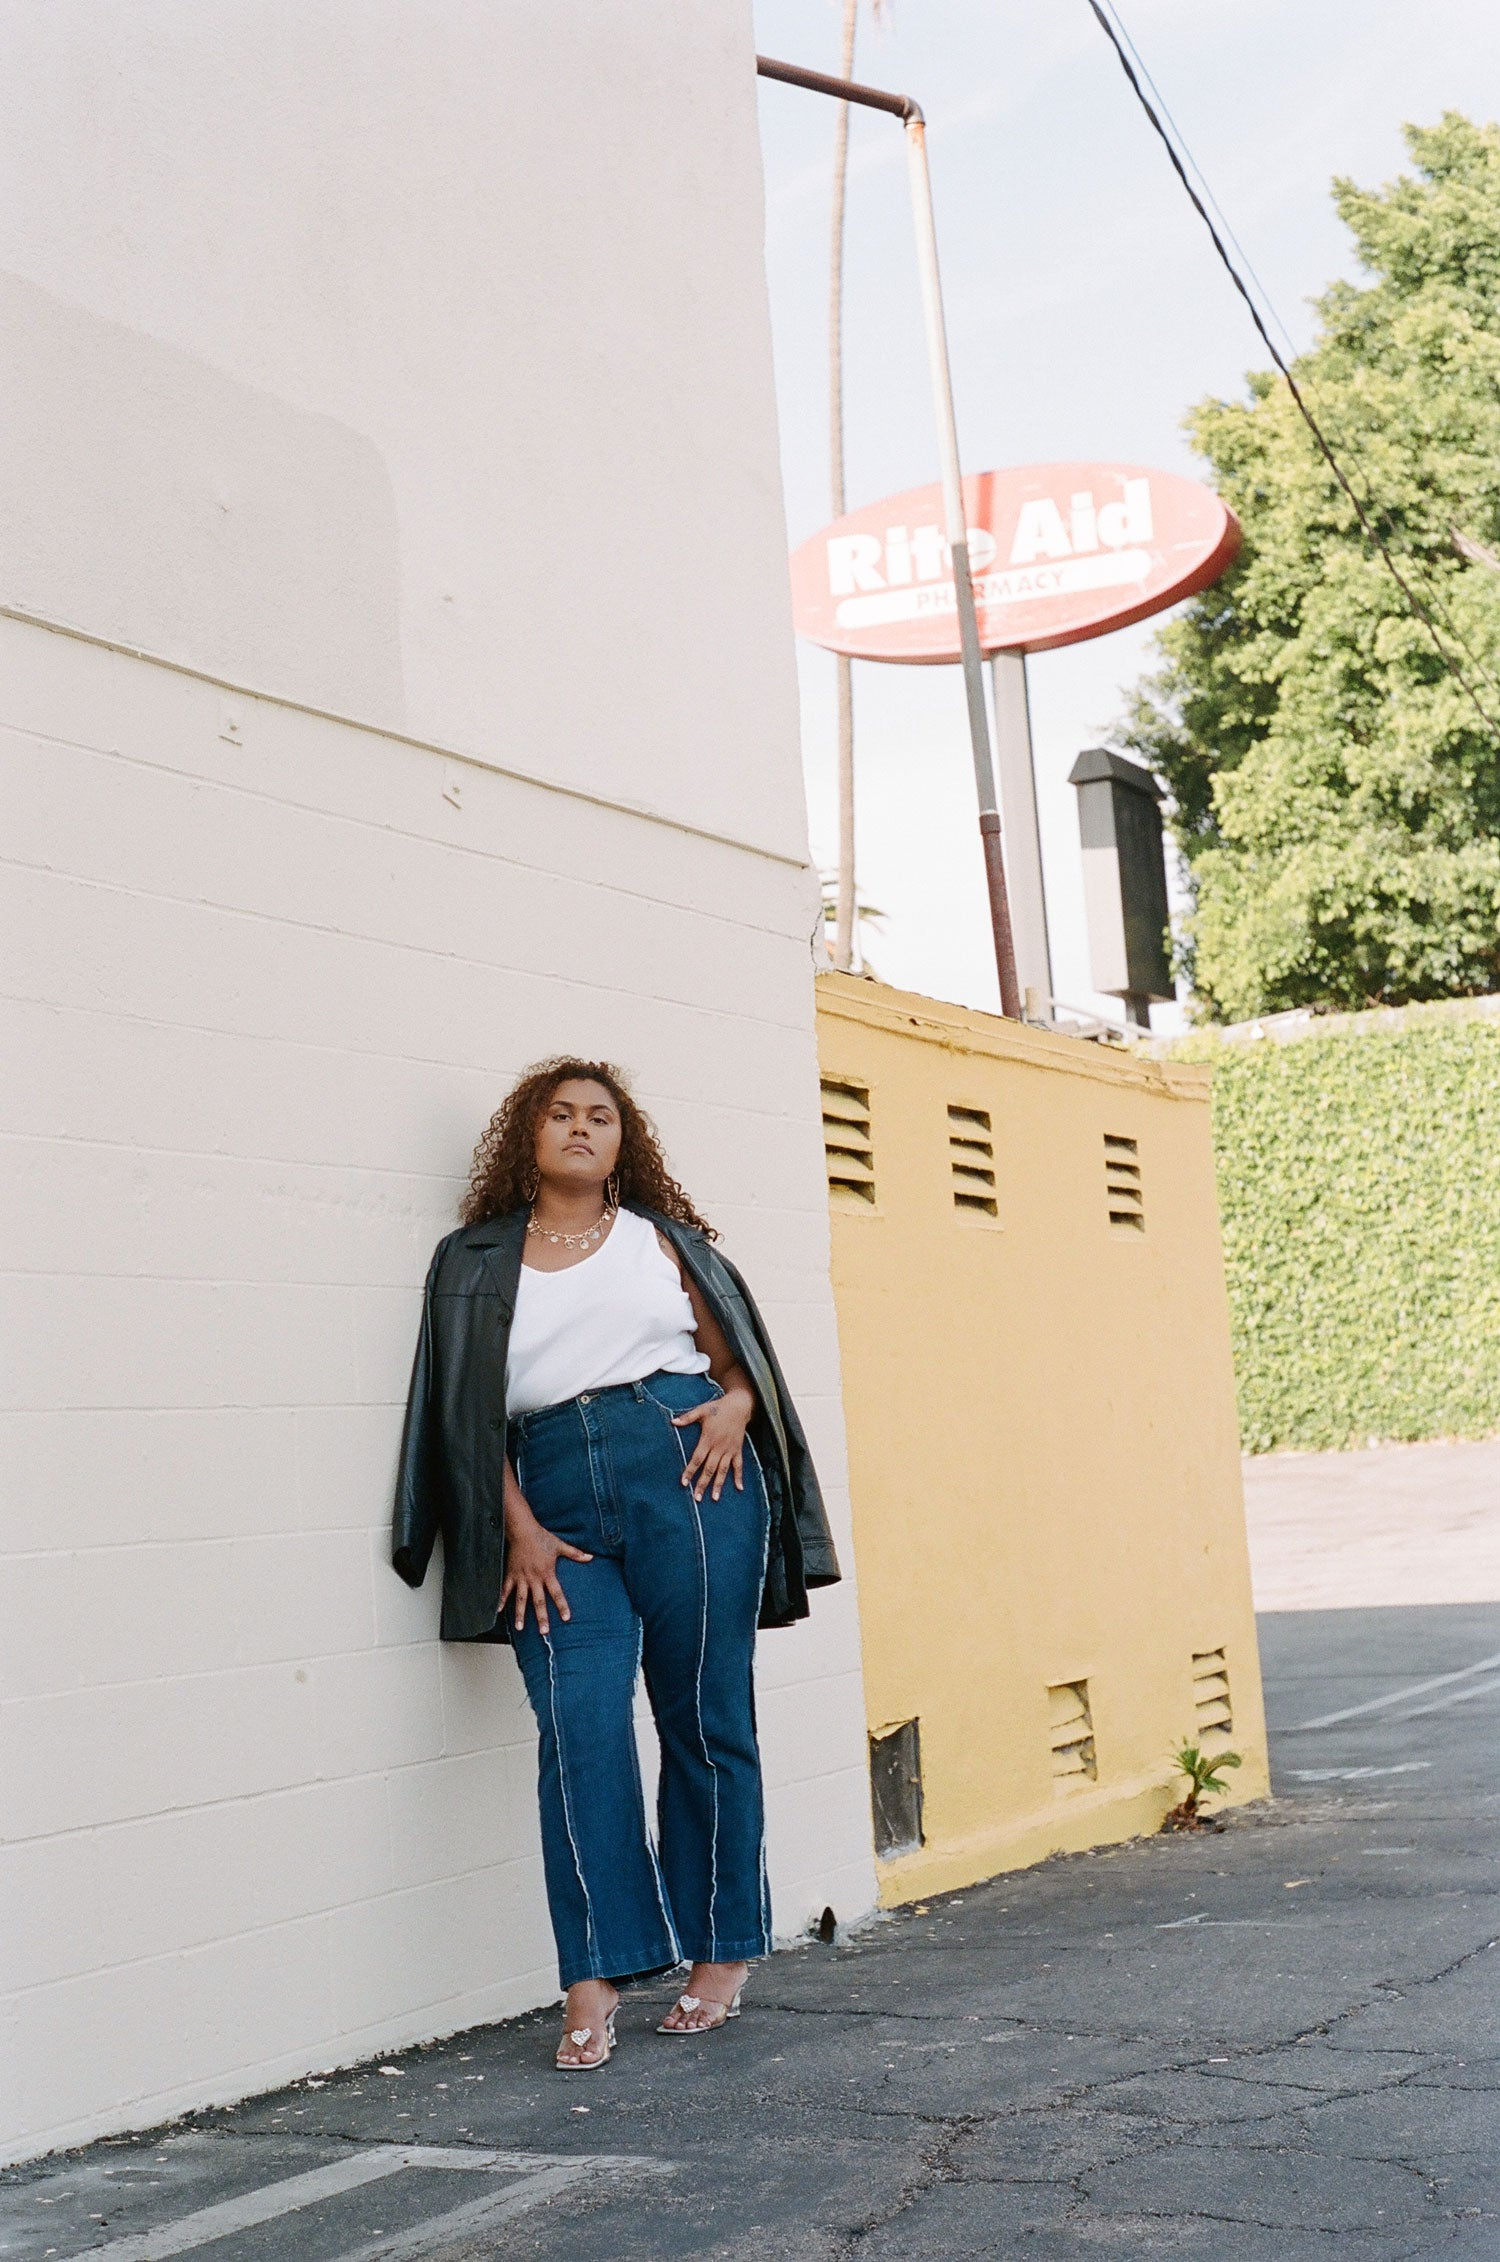 Fashion model leans against wall while wearing plus size vintage leather trench coat, with high waisted 90s jeans